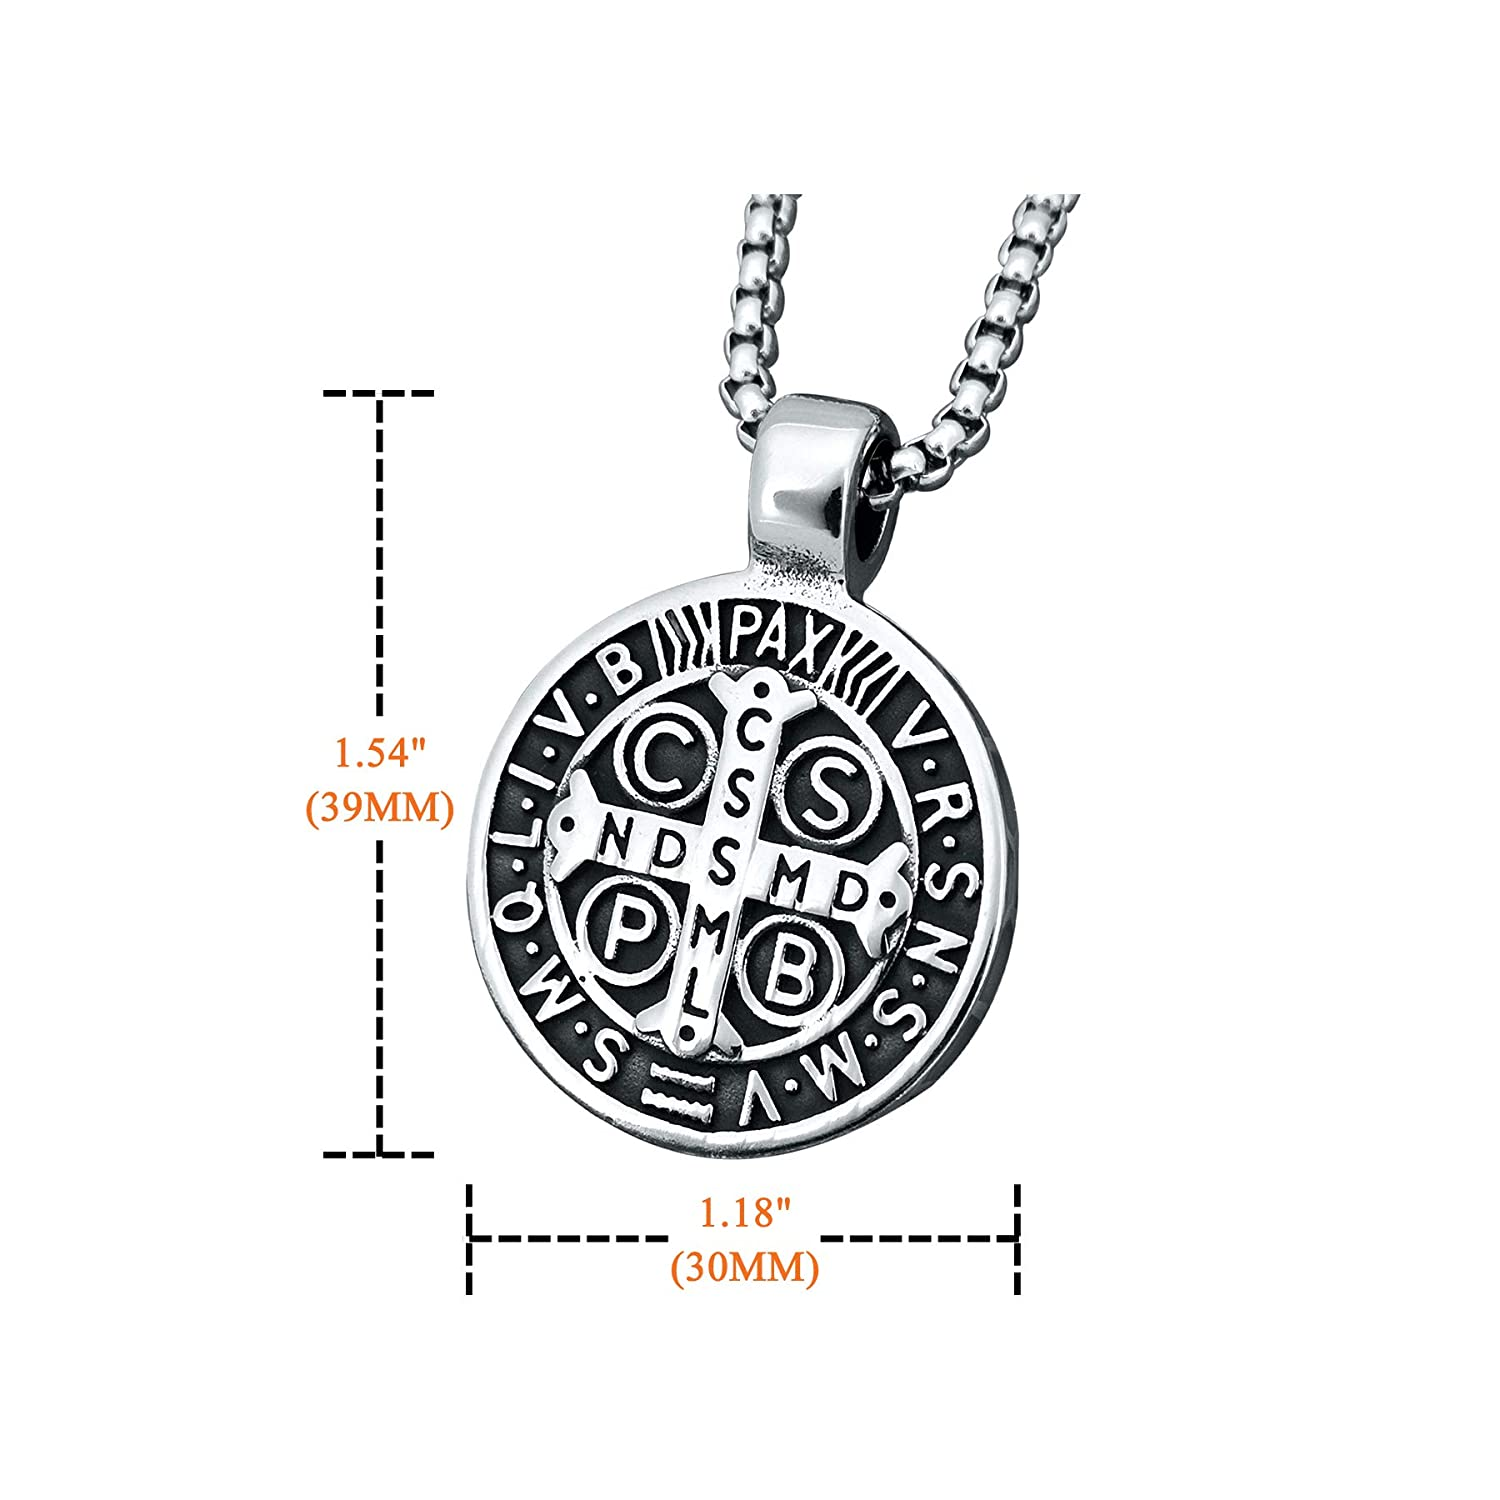 Mens St Benedict Exorcism Pendant Necklace Stainless Steel Catholic Roman Cross Demon Protection Ghost Hunter